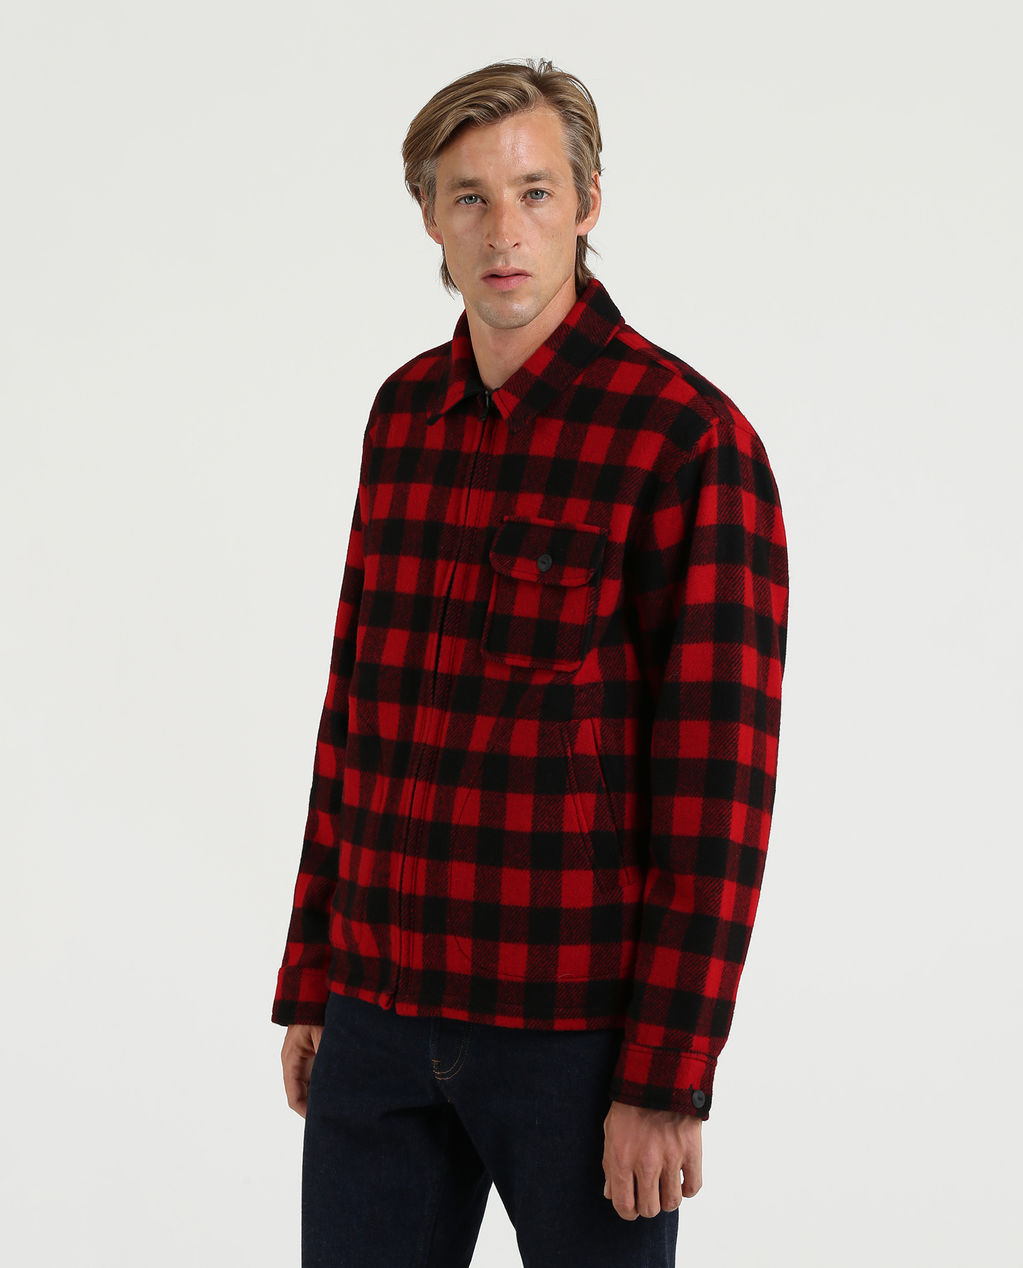 Timber Jacket RED BLACK BUFFA